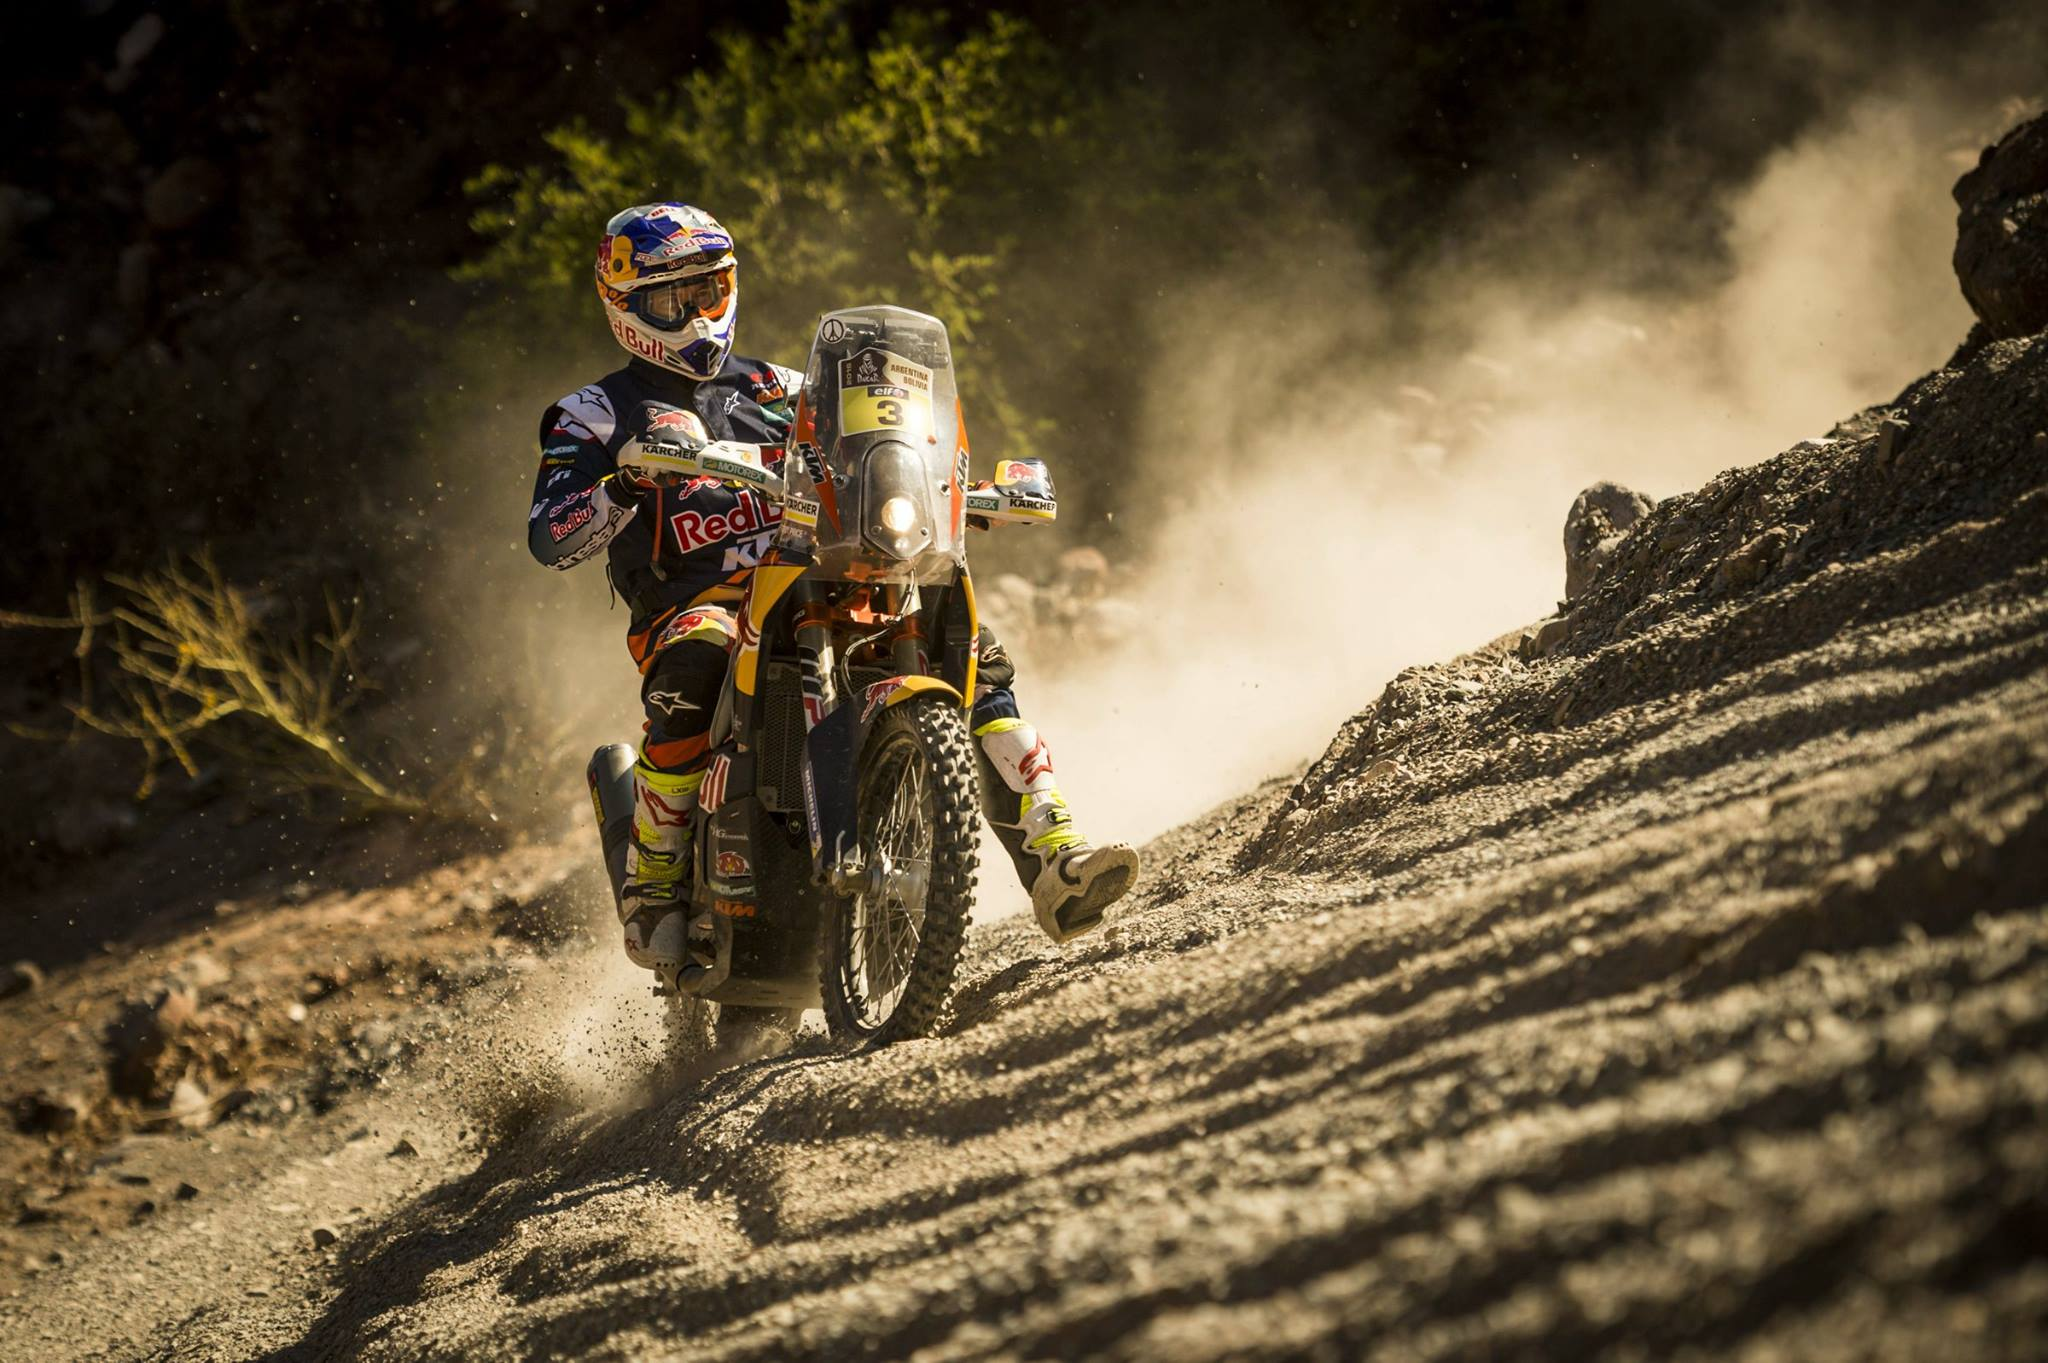 Price Gains Dakar Lead